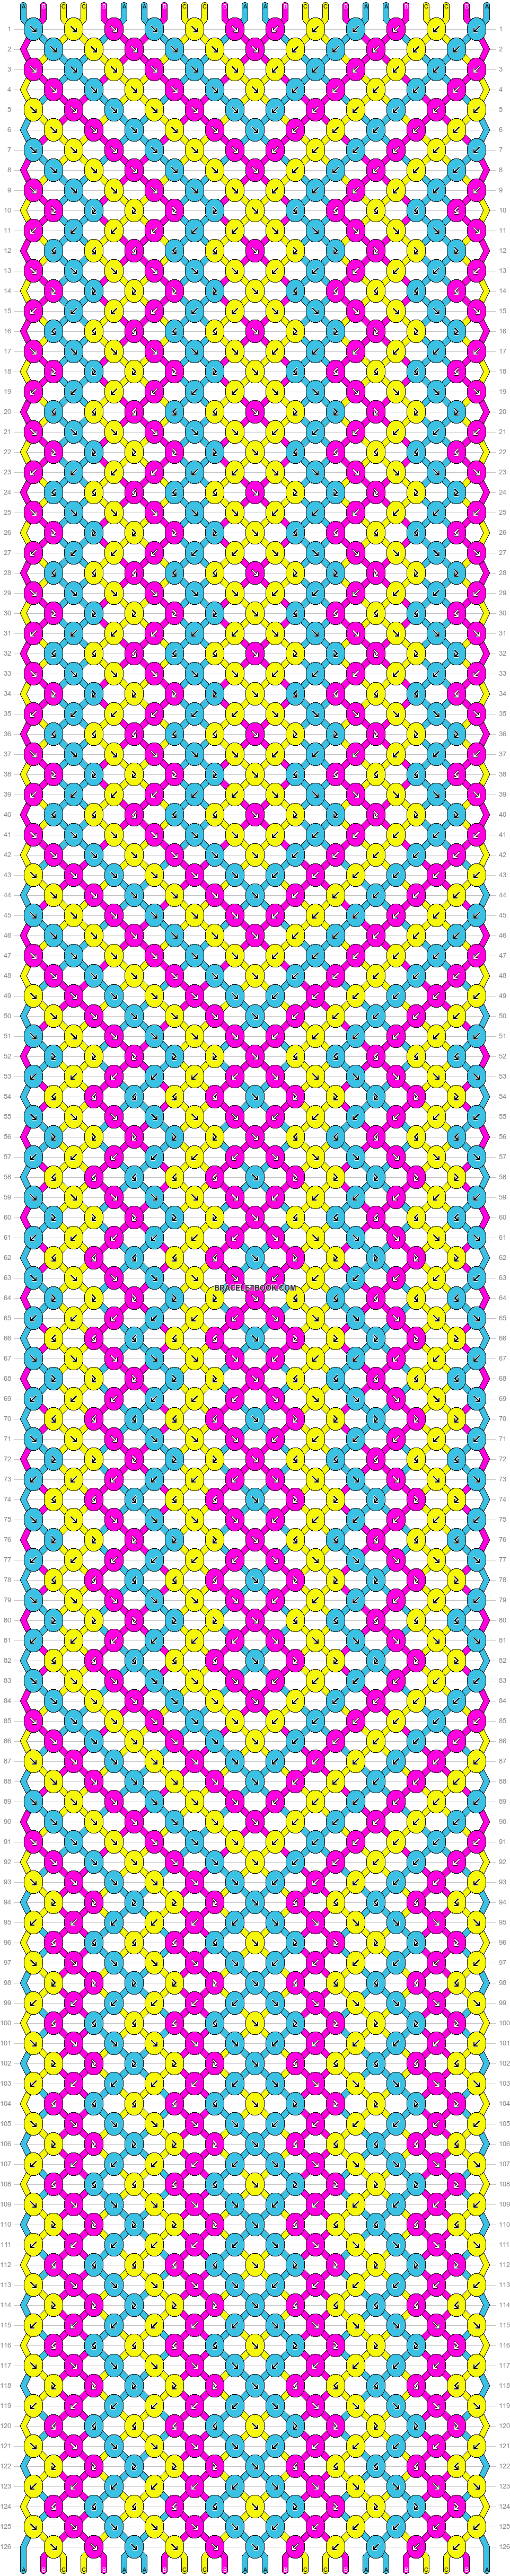 Normal Pattern #22566 added by fangngaf